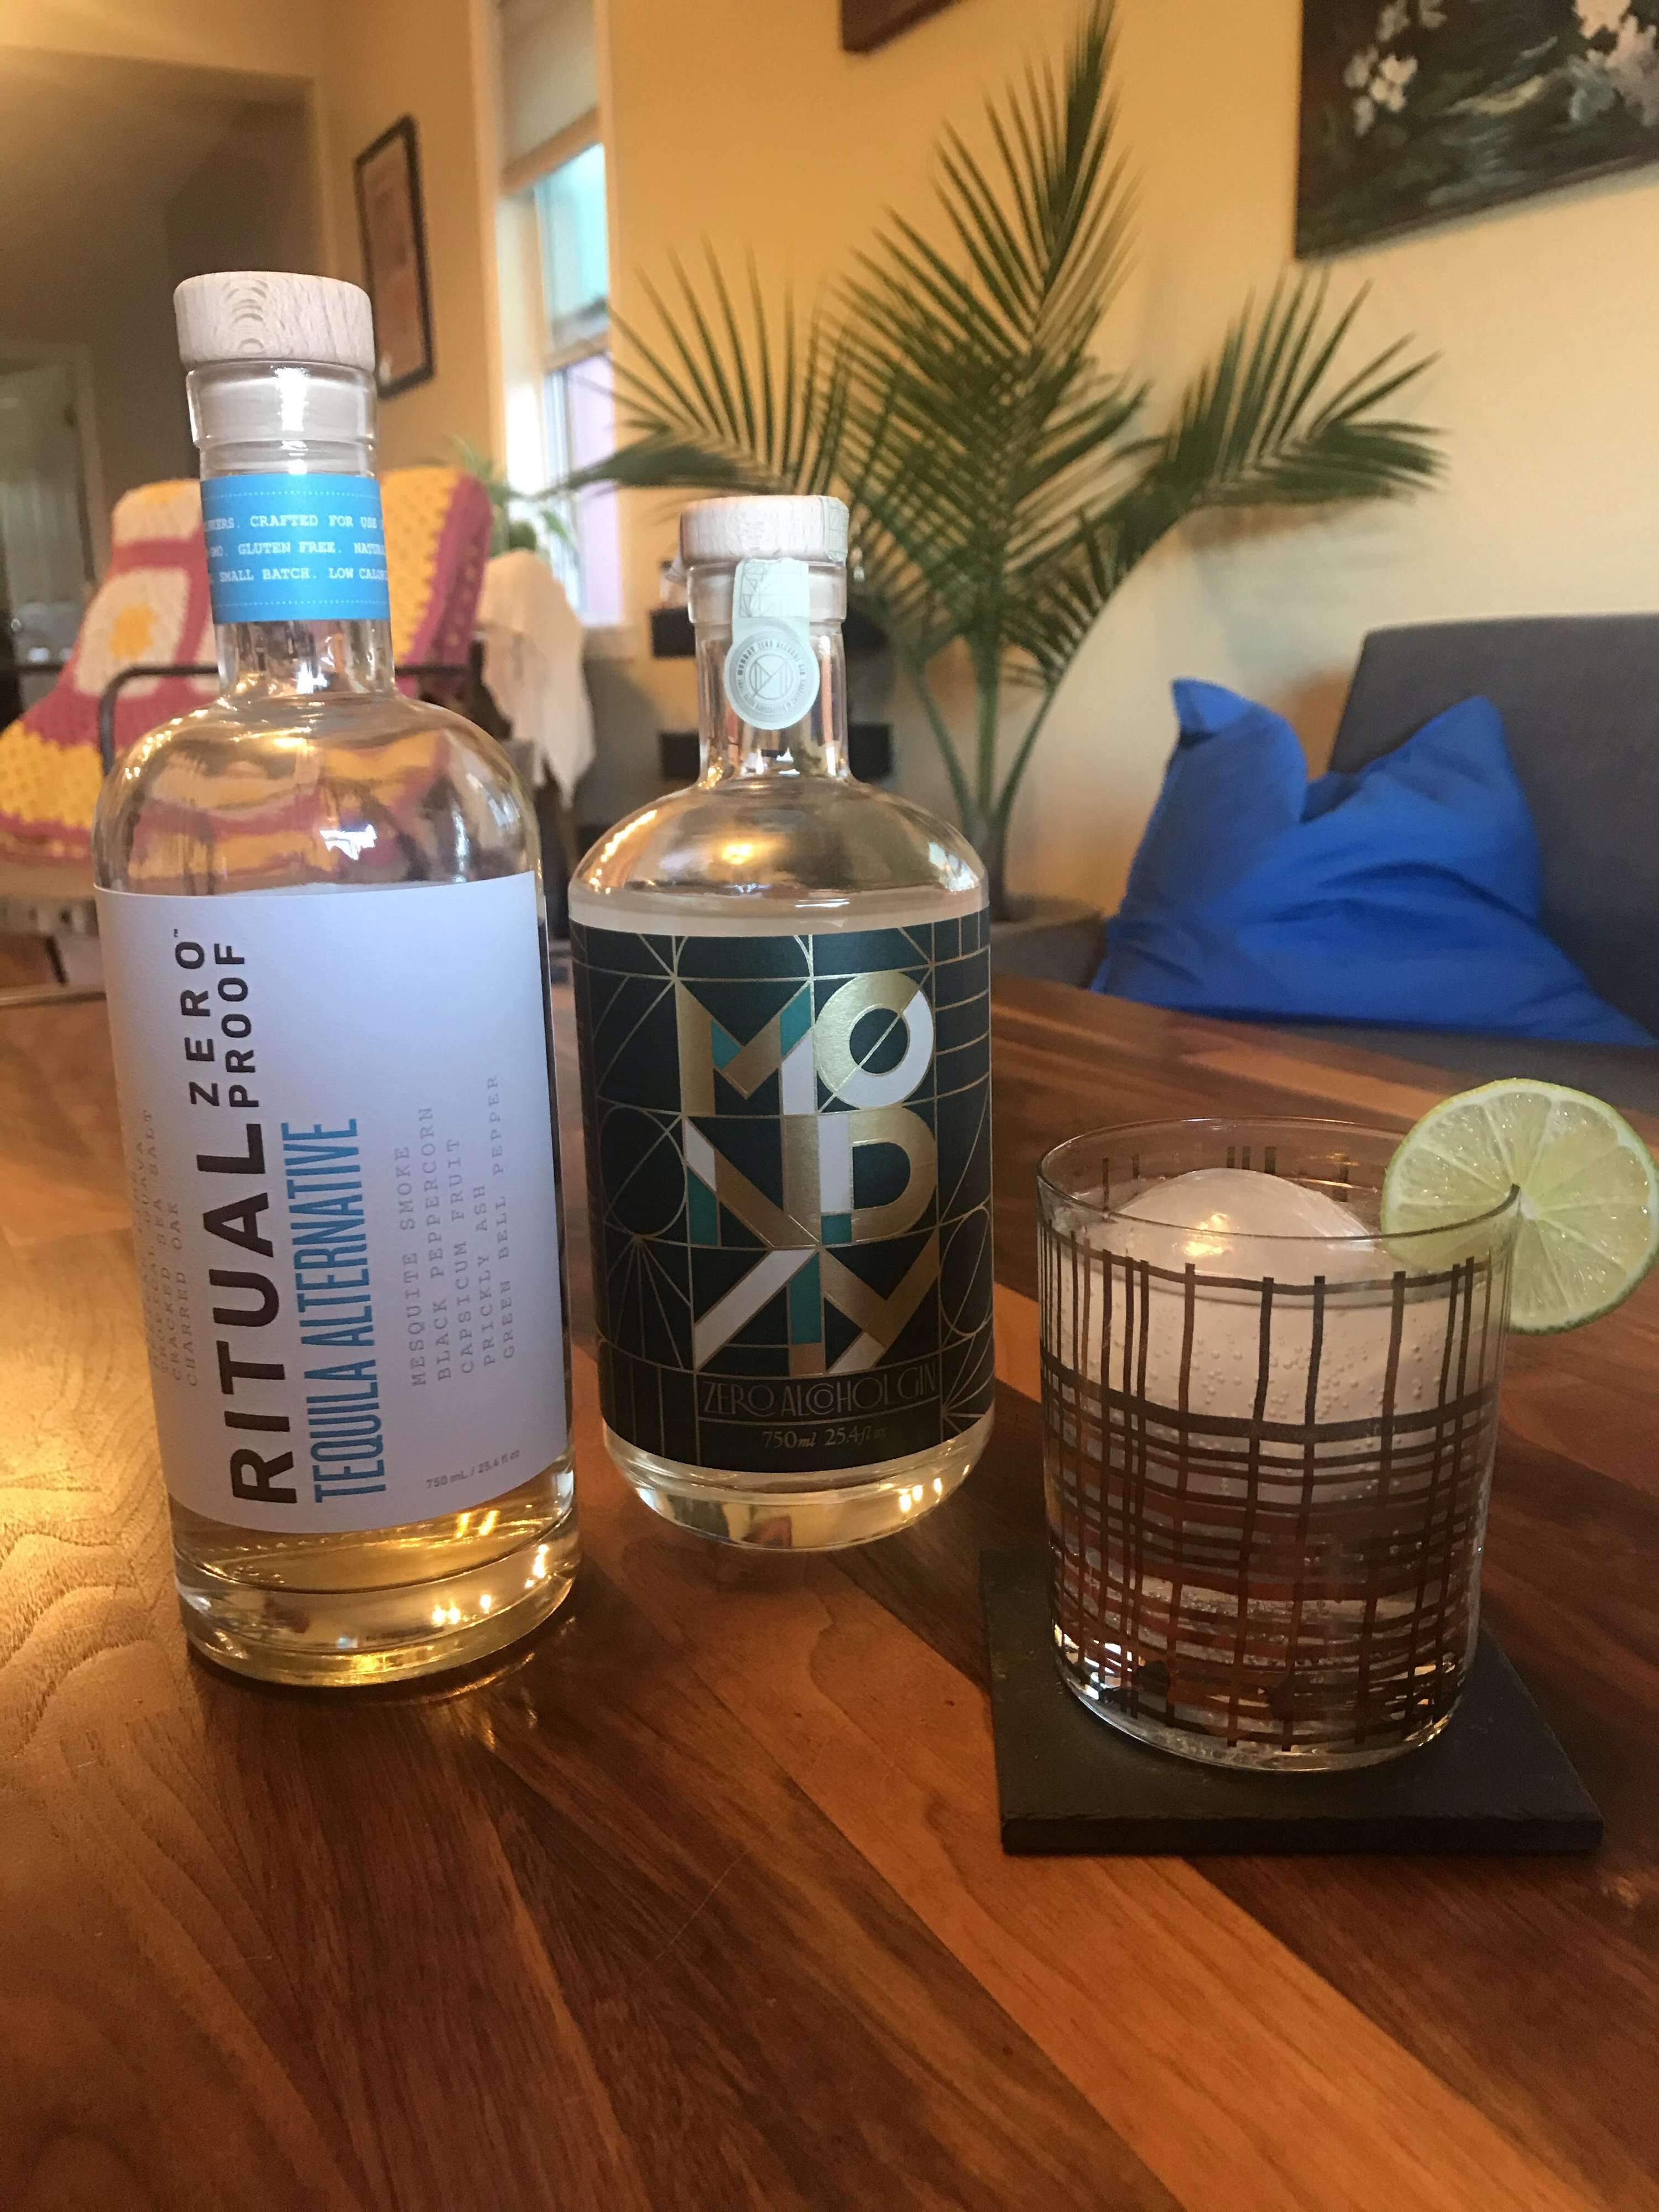 The gin and tequila alternatives in their bottles next to a glass